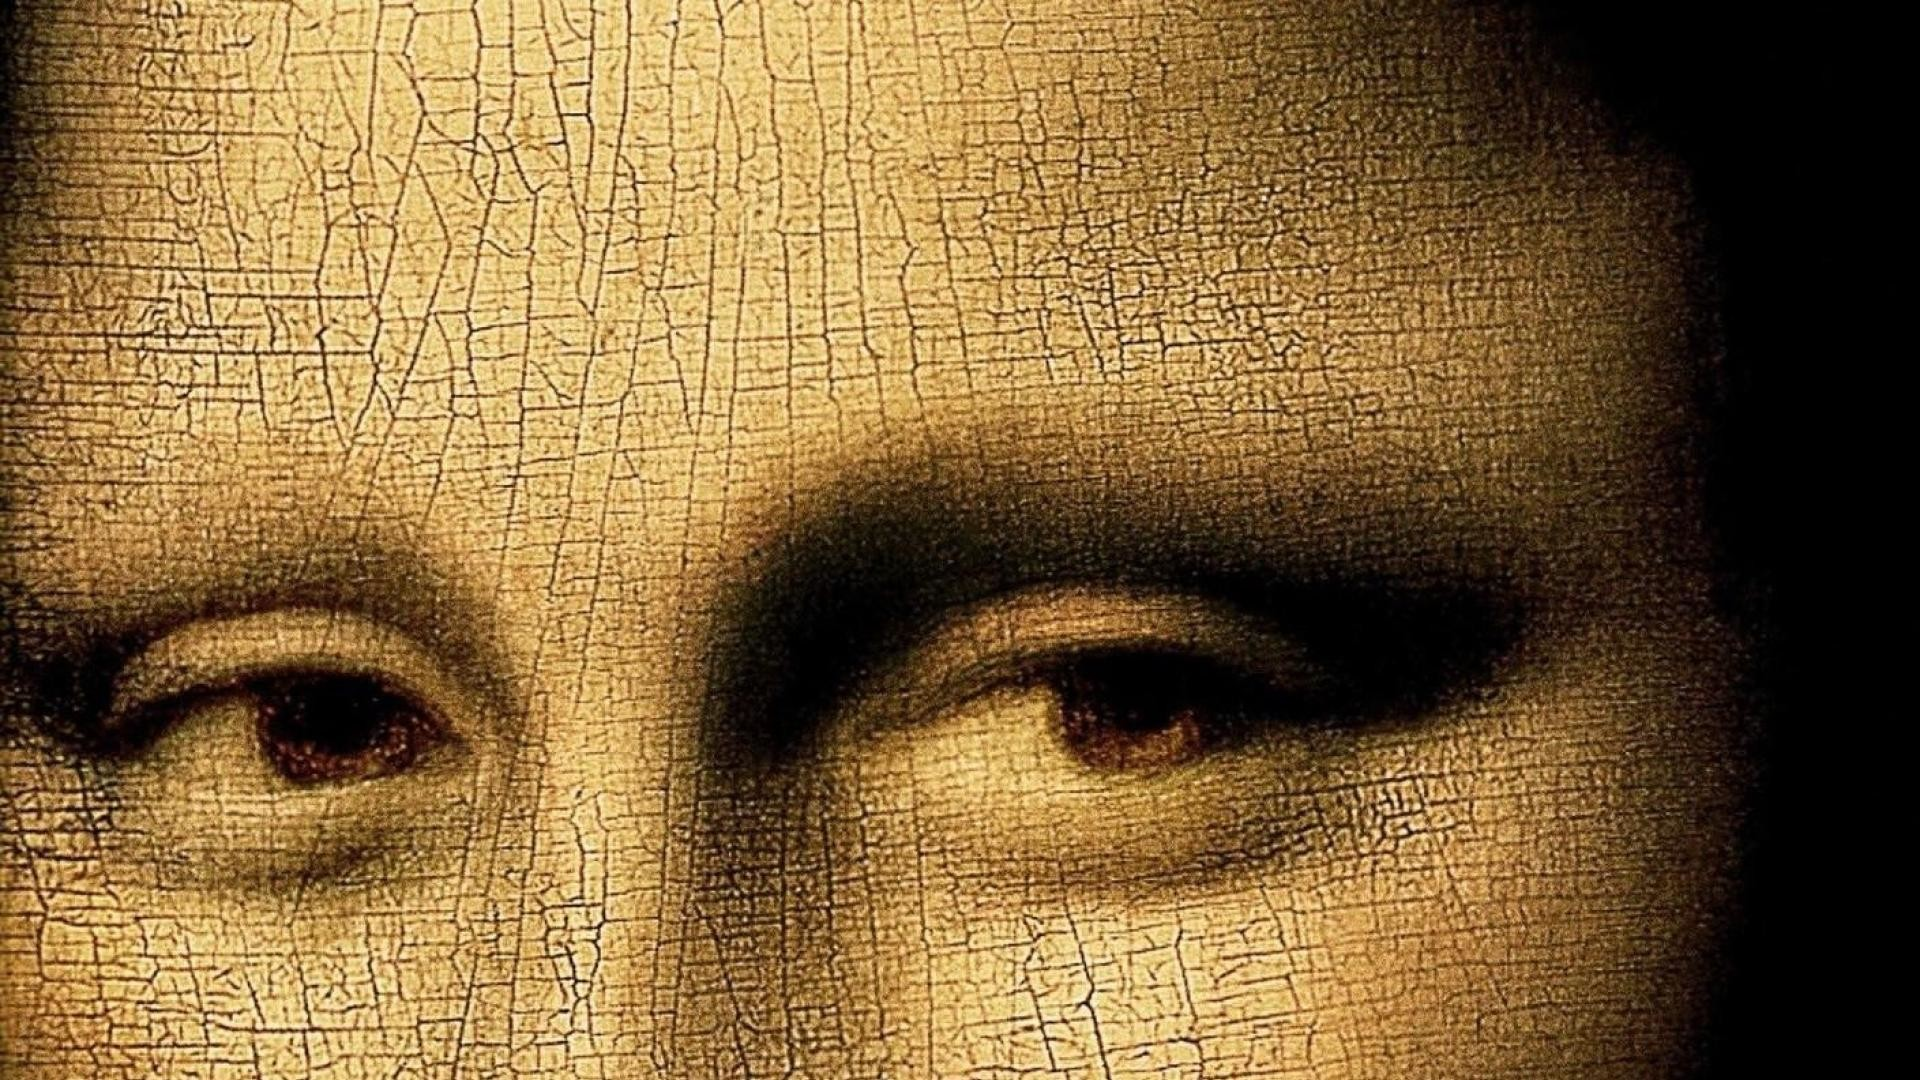 da vinci wallpaper hd 55 images